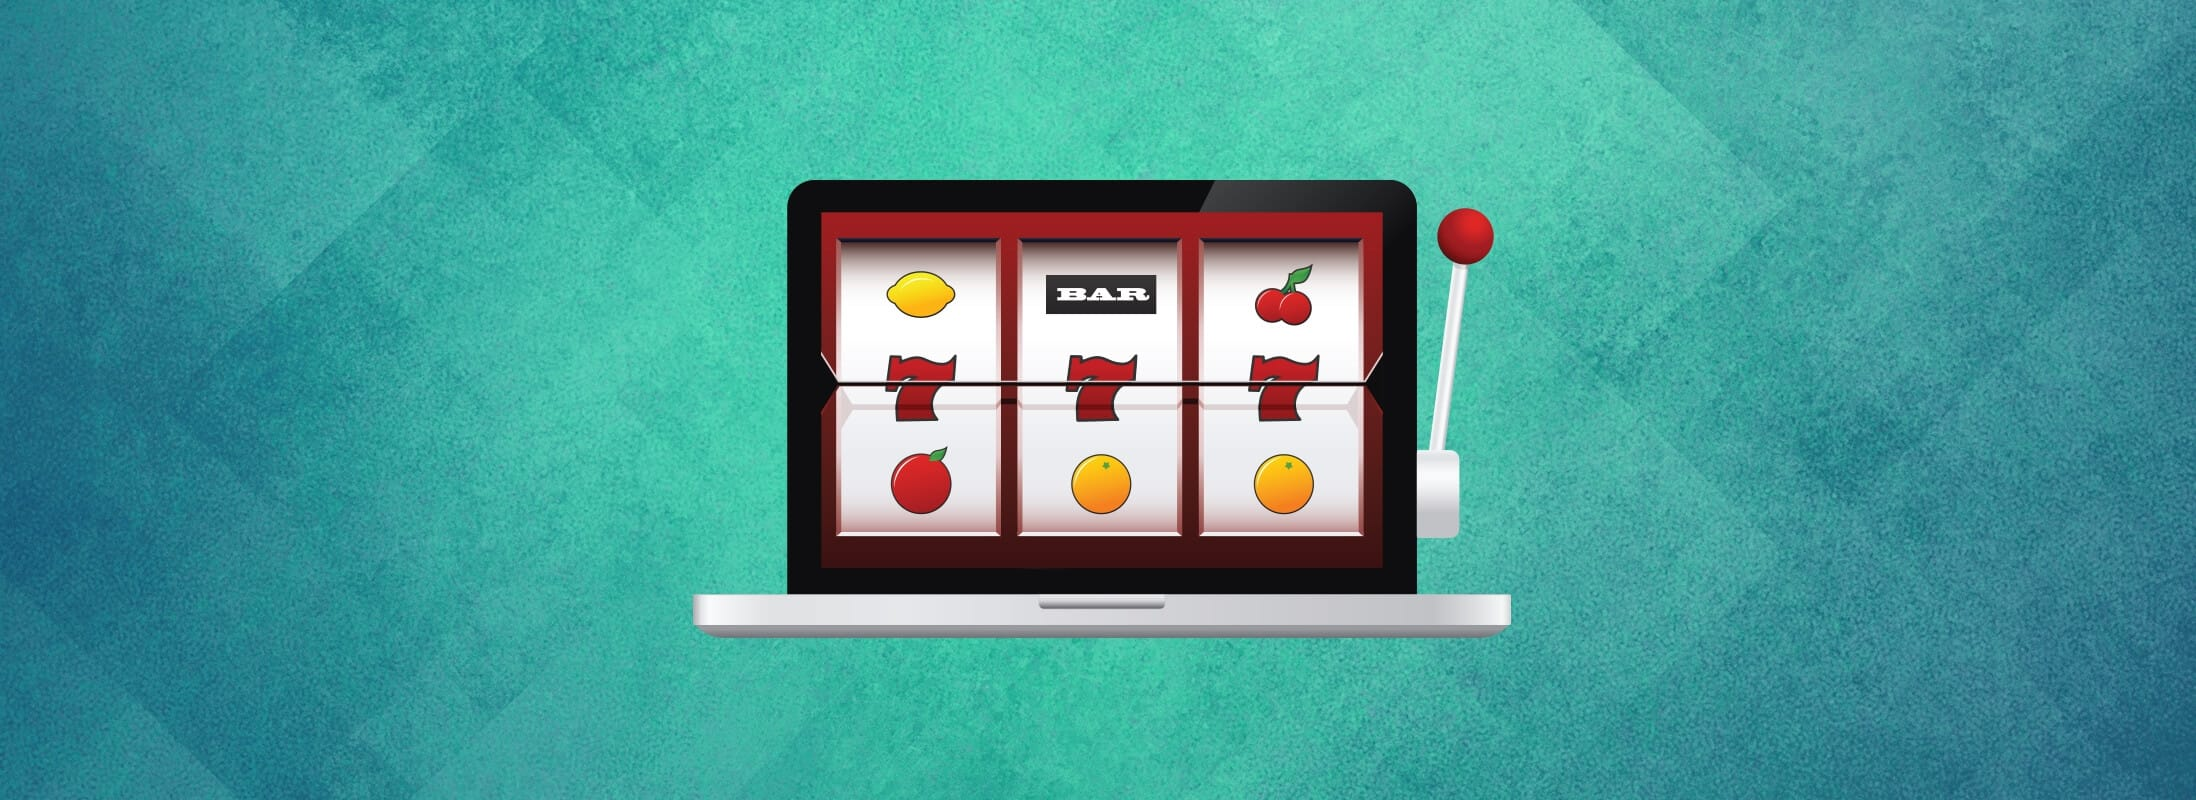 Why are companies still making fruit machine games?